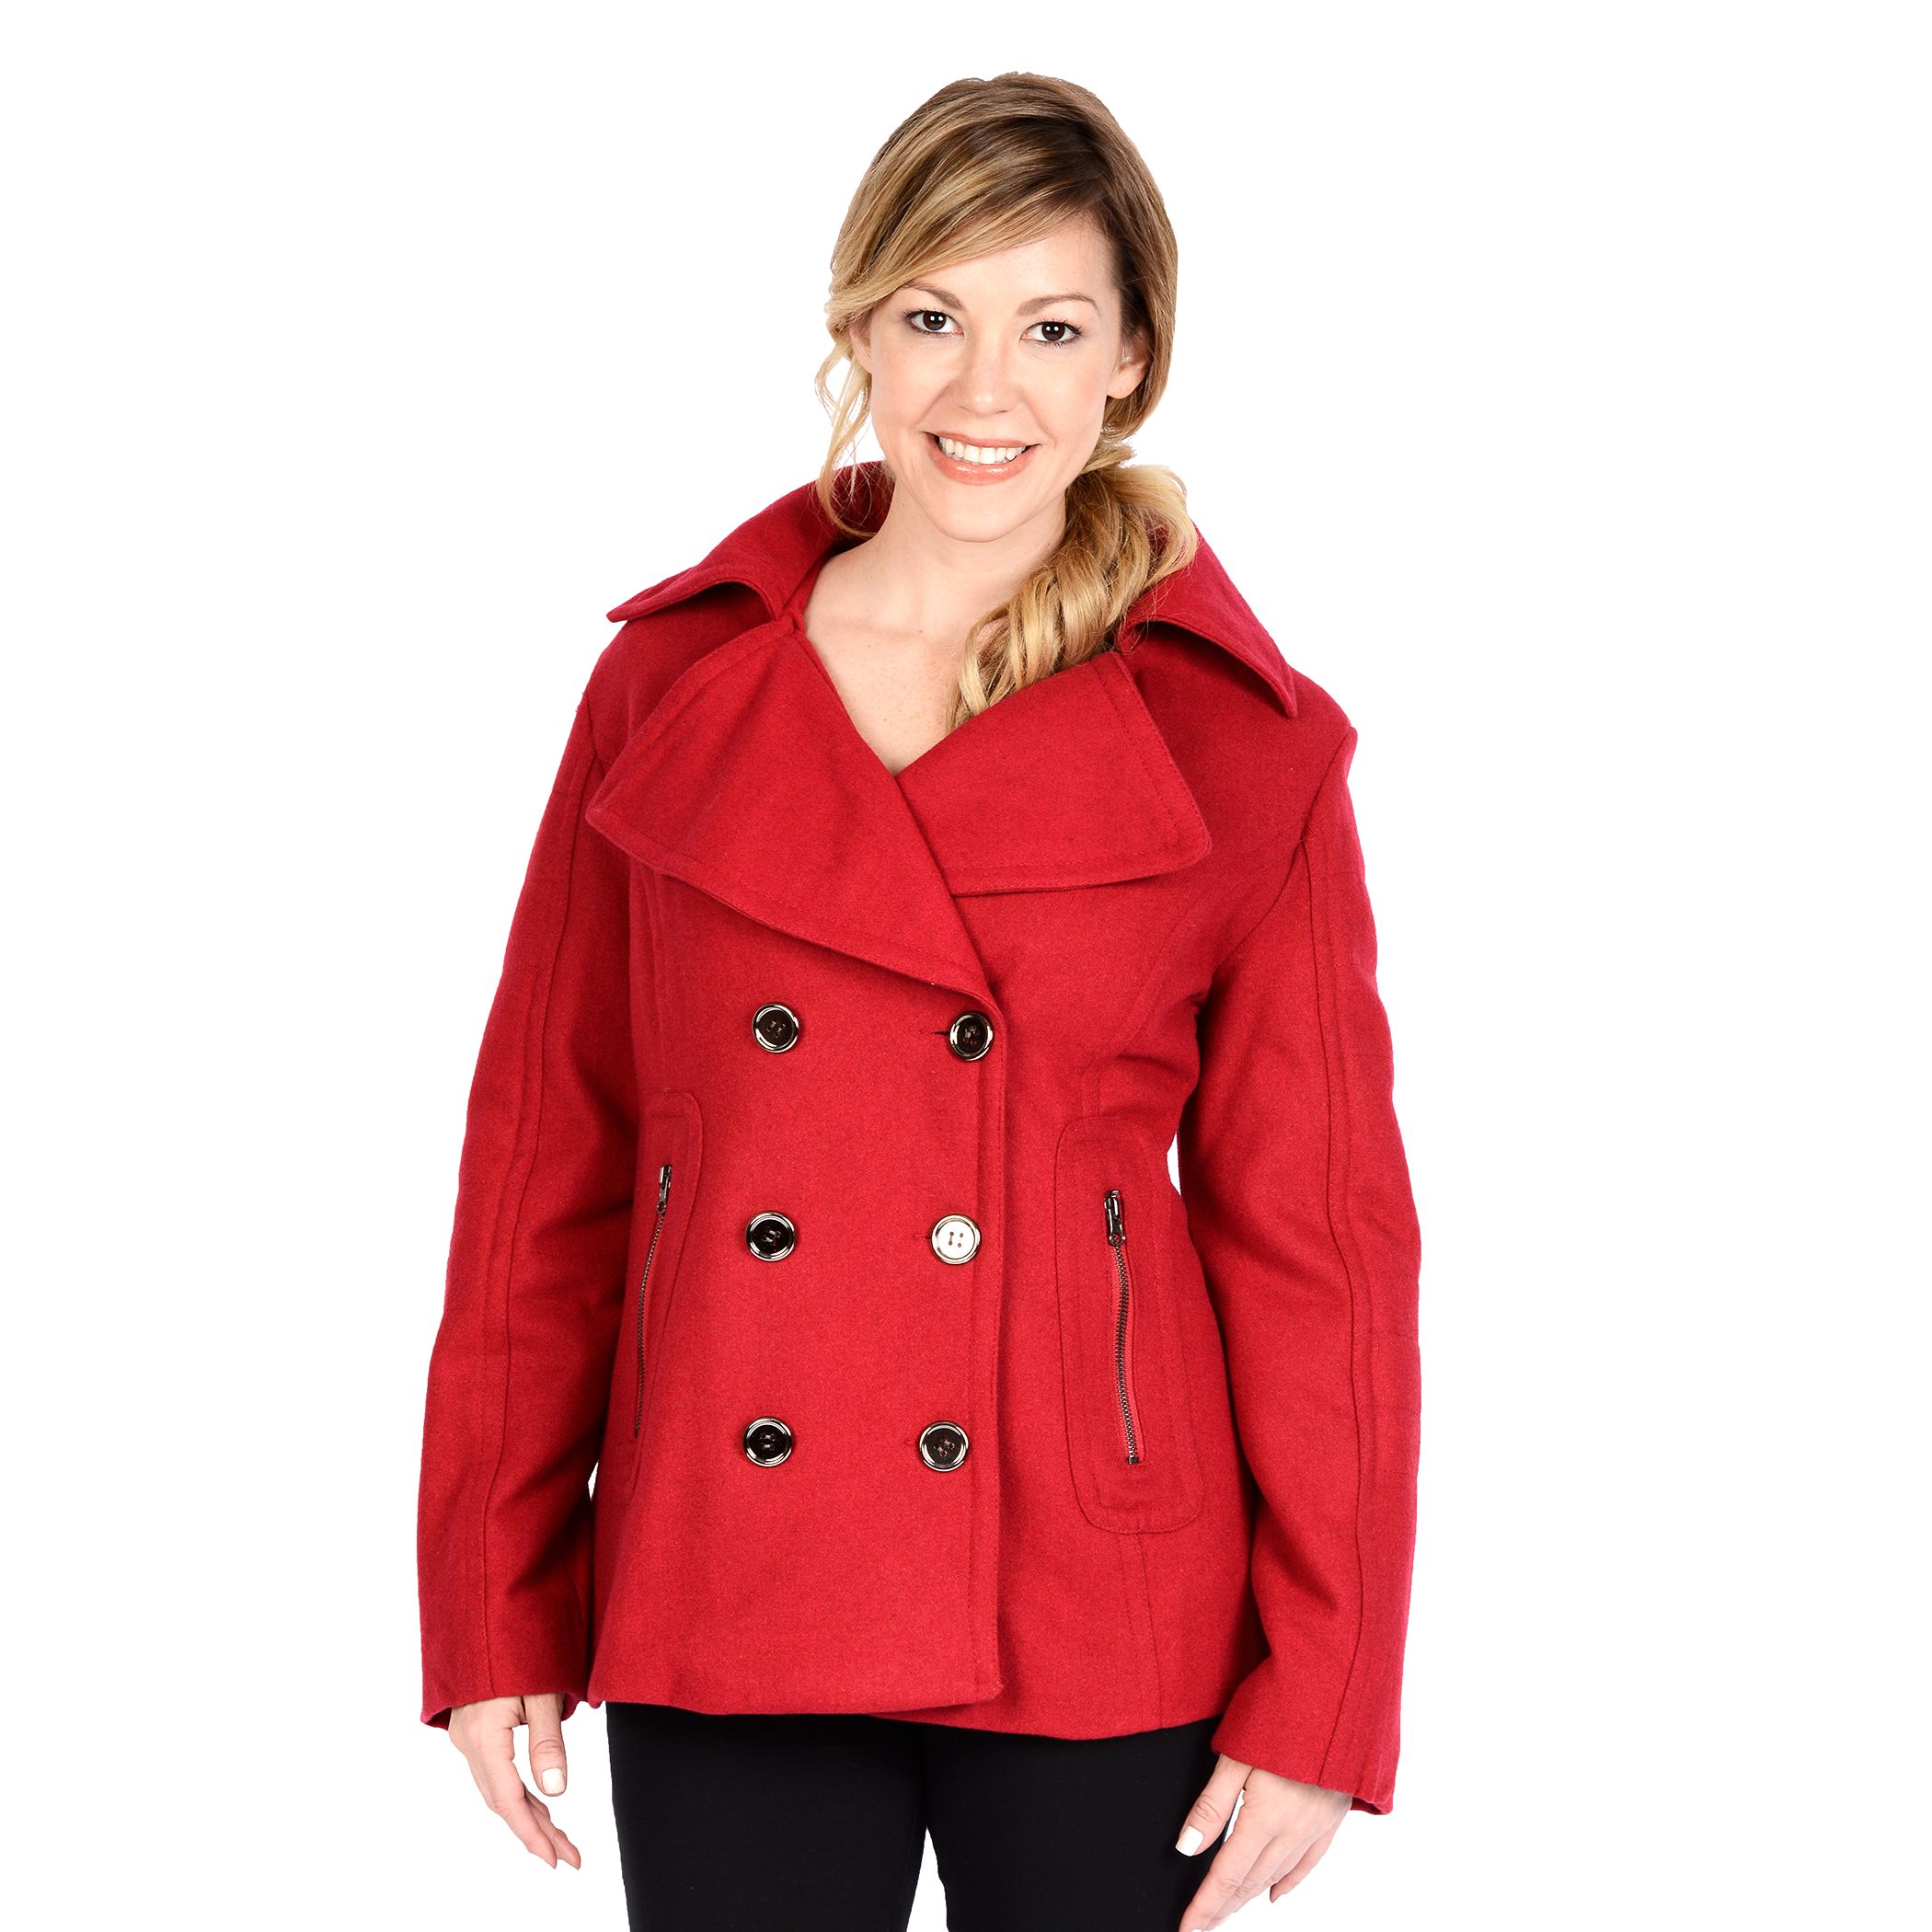 Women's double breasted pea coat with hood